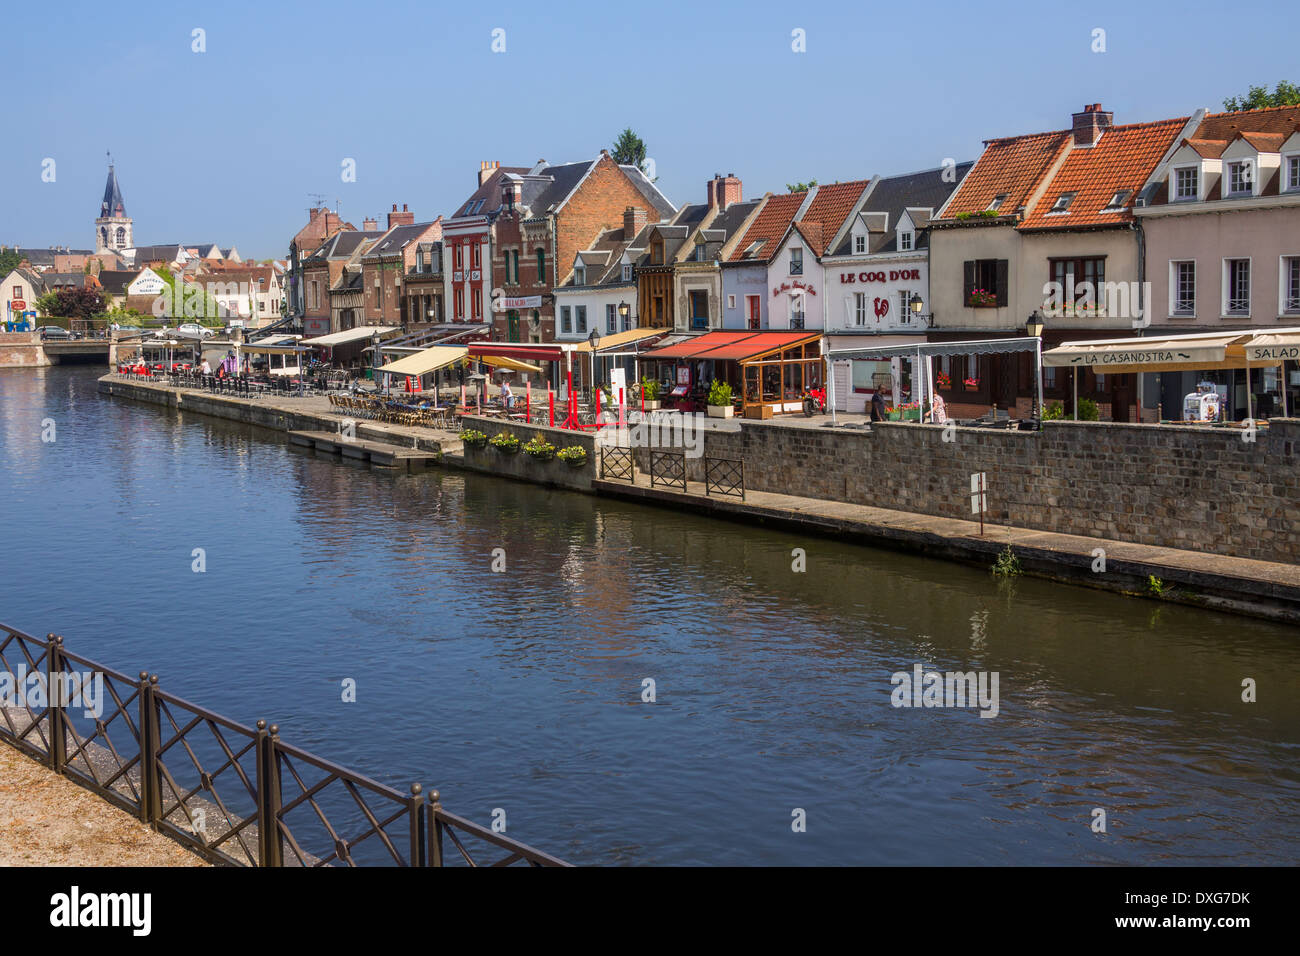 River Somme in the town of Amiens in the Picardy region of northern France. Stock Photo